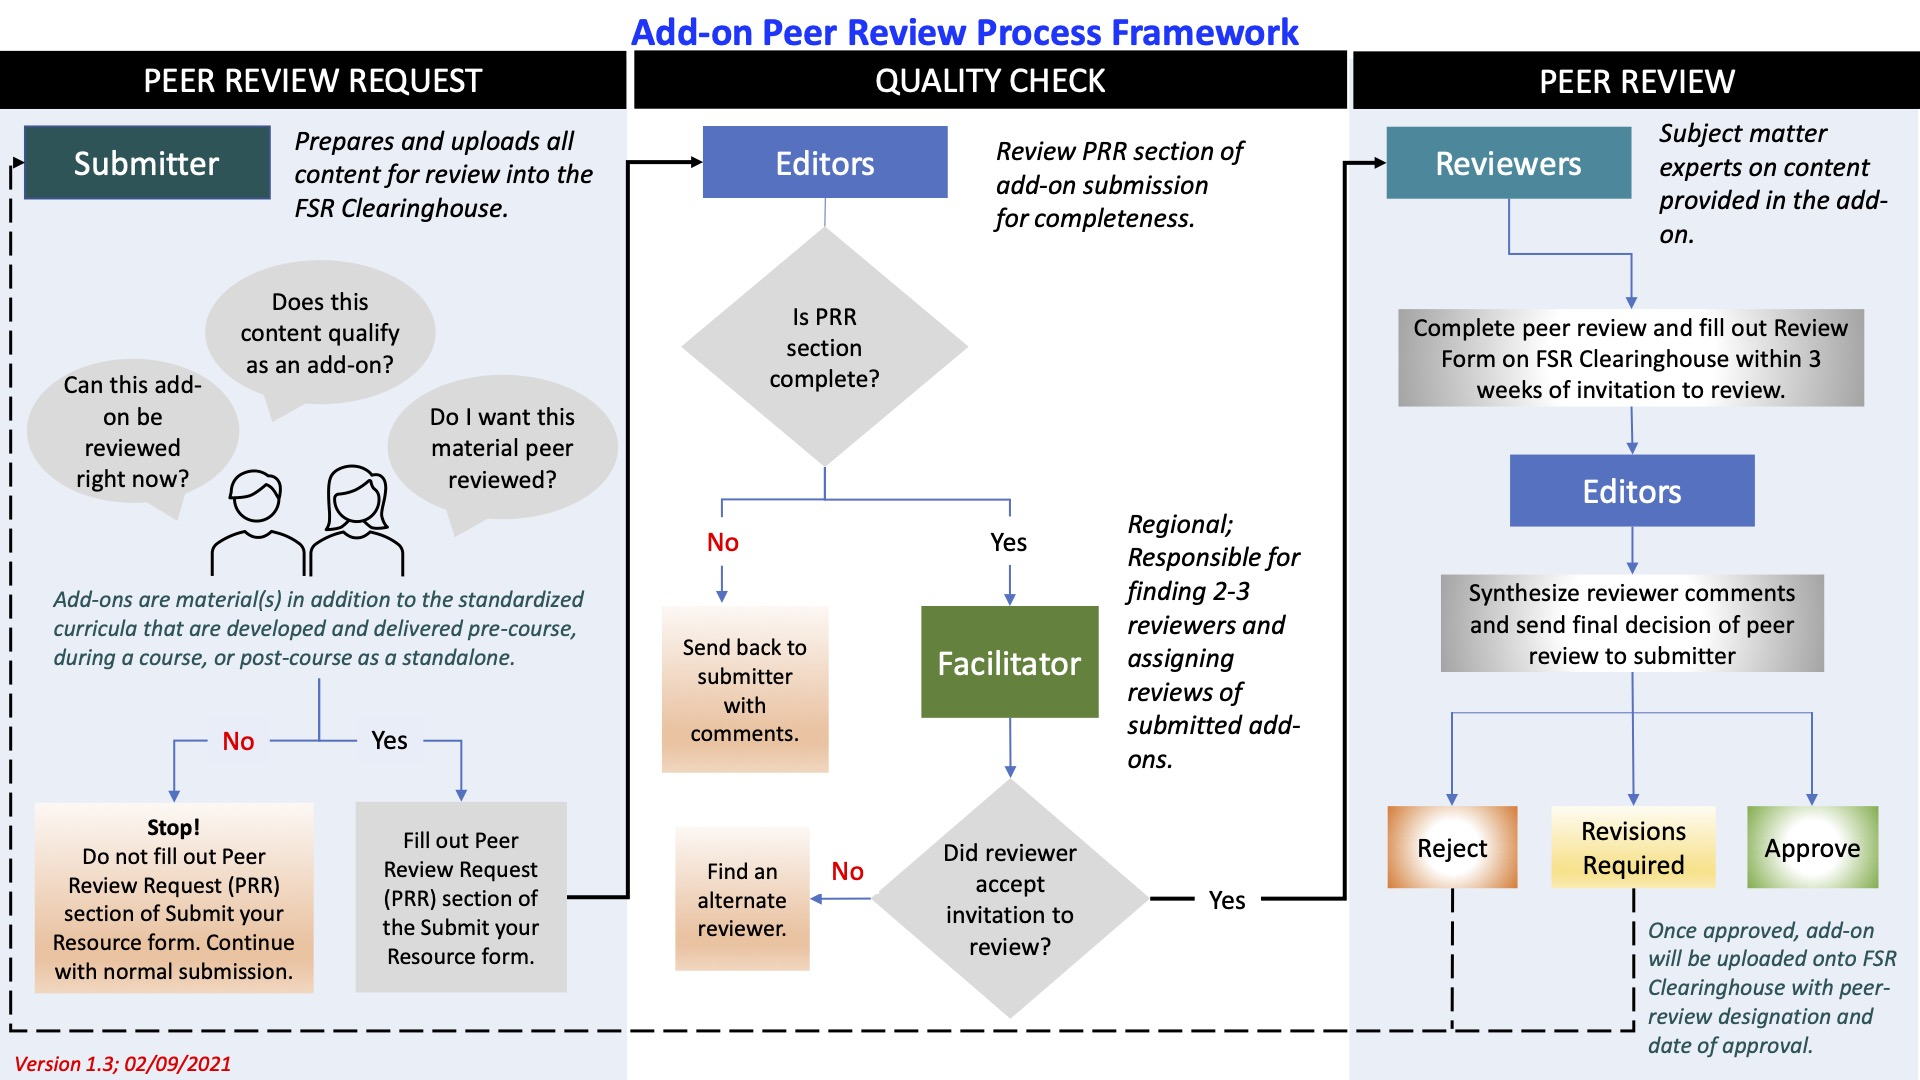 Overview of the peer review process for add-on content. The peer review has three stages: Request for Peer Review, Quality Check, and Peer Review. Roles of submitter, editor, facilitators, and reviewers are also shown and will be described in text on page